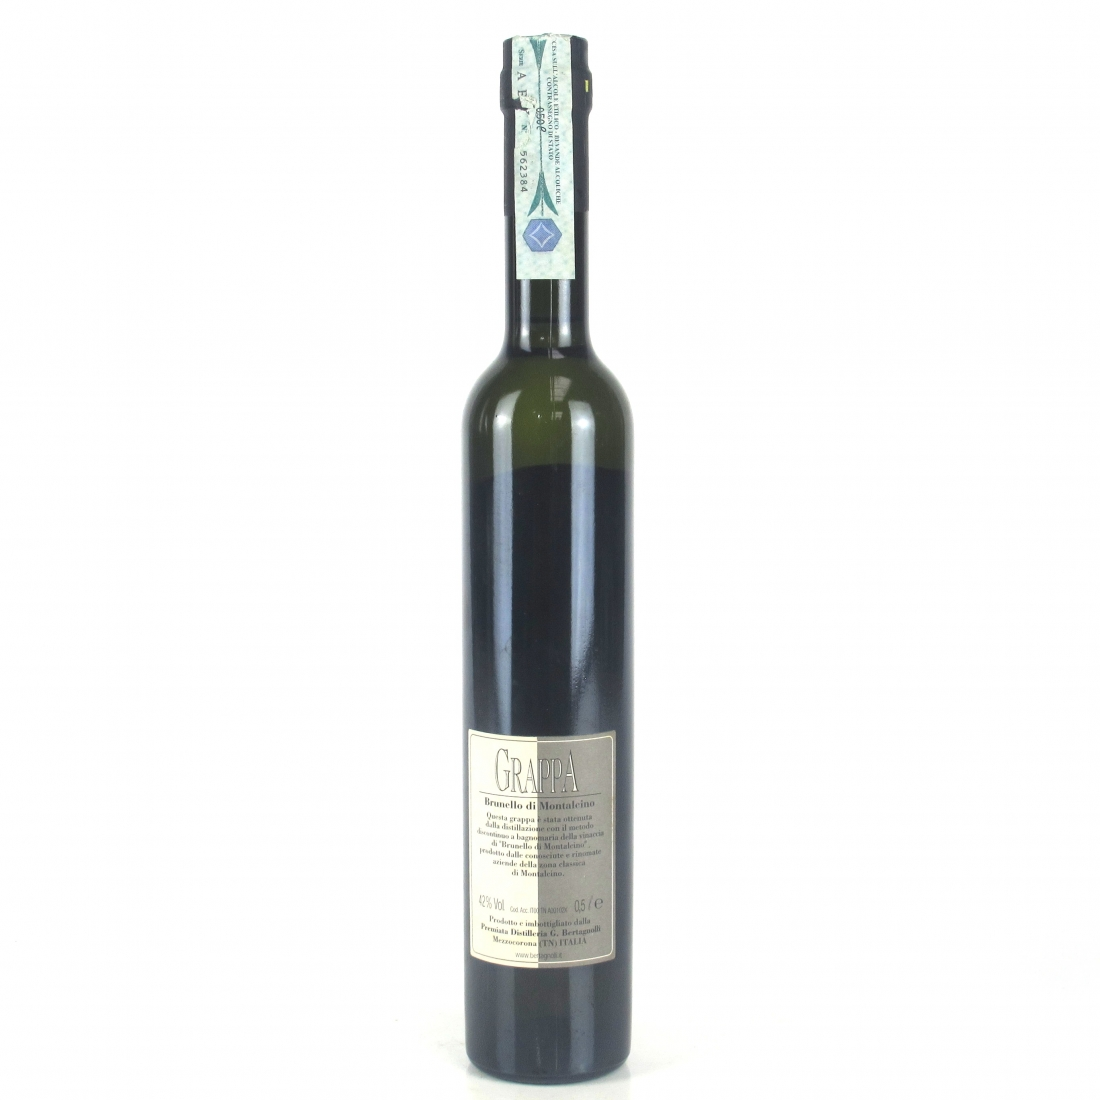 Brunello di Montalcino Grappa 50cl